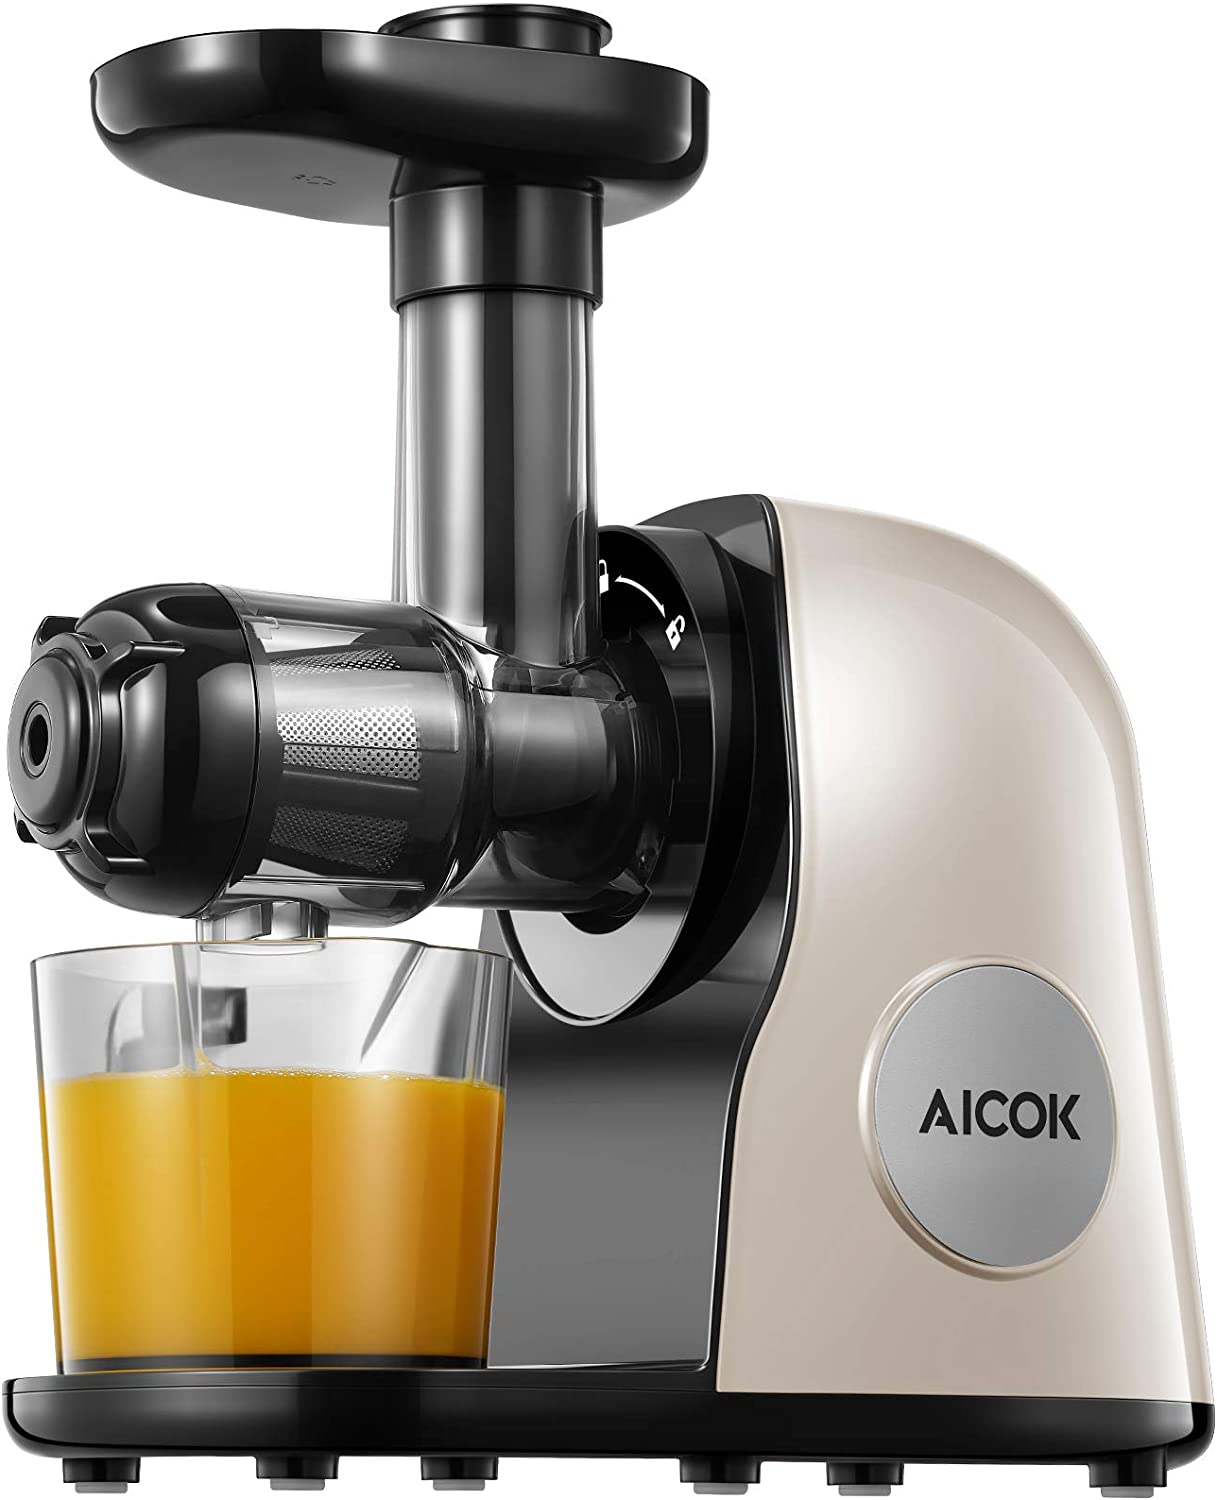 Juicer Machines, Aicok Slow Masticating Juicer Extractor Easy to Clean, Quiet Motor & Reverse Function, BPA-Free, Cold Press Juicer with Brush, Juice Recipes for Vegetables and Fruits, Ivory White